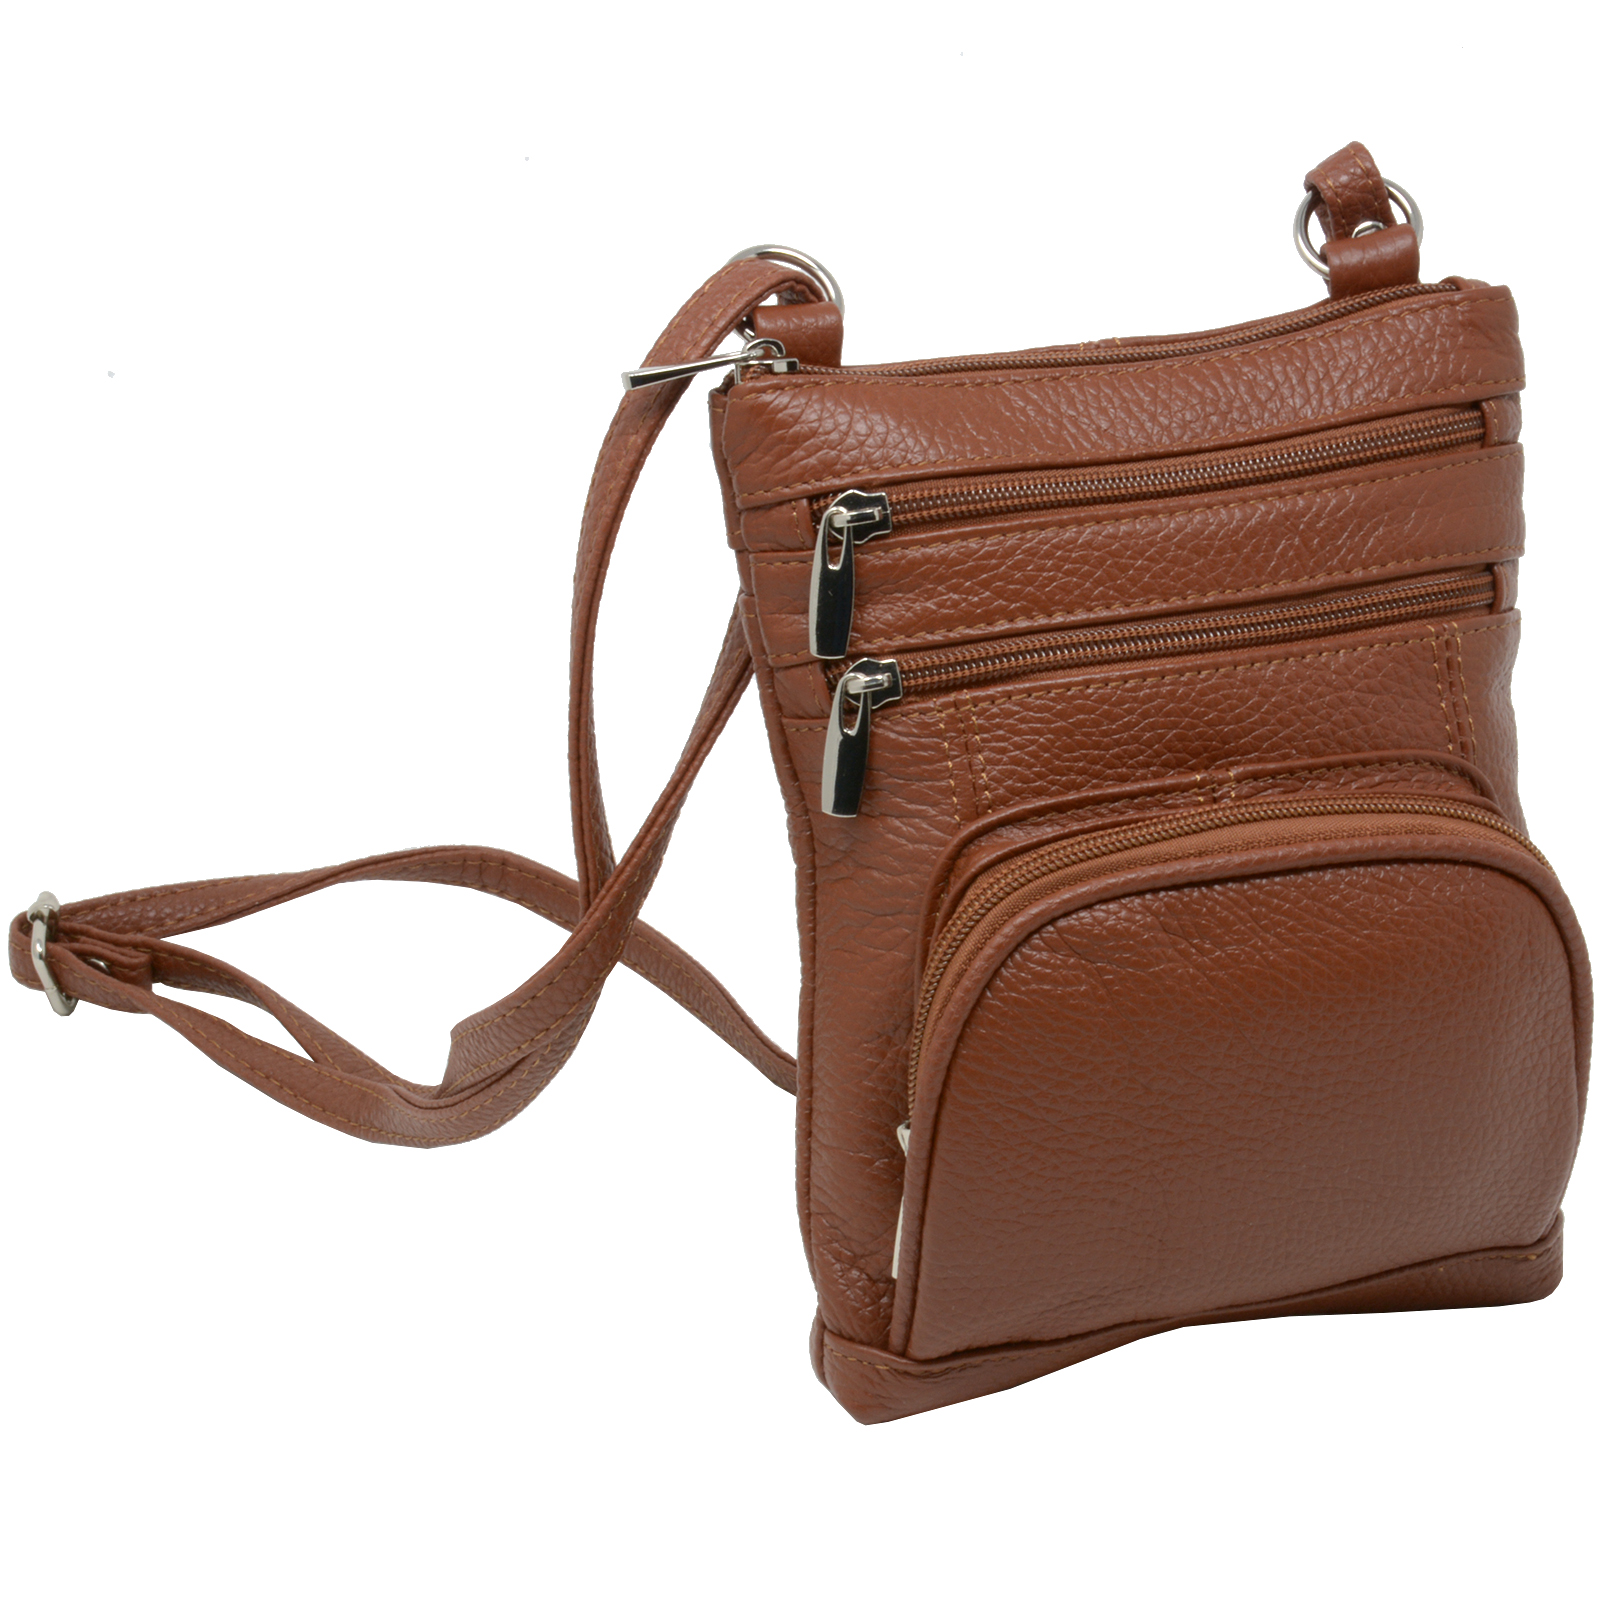 Leather-Shoulder-Bag-Handbag-Purse-Cross-Body-Organizer-Wallet-Multi-Pockets-New